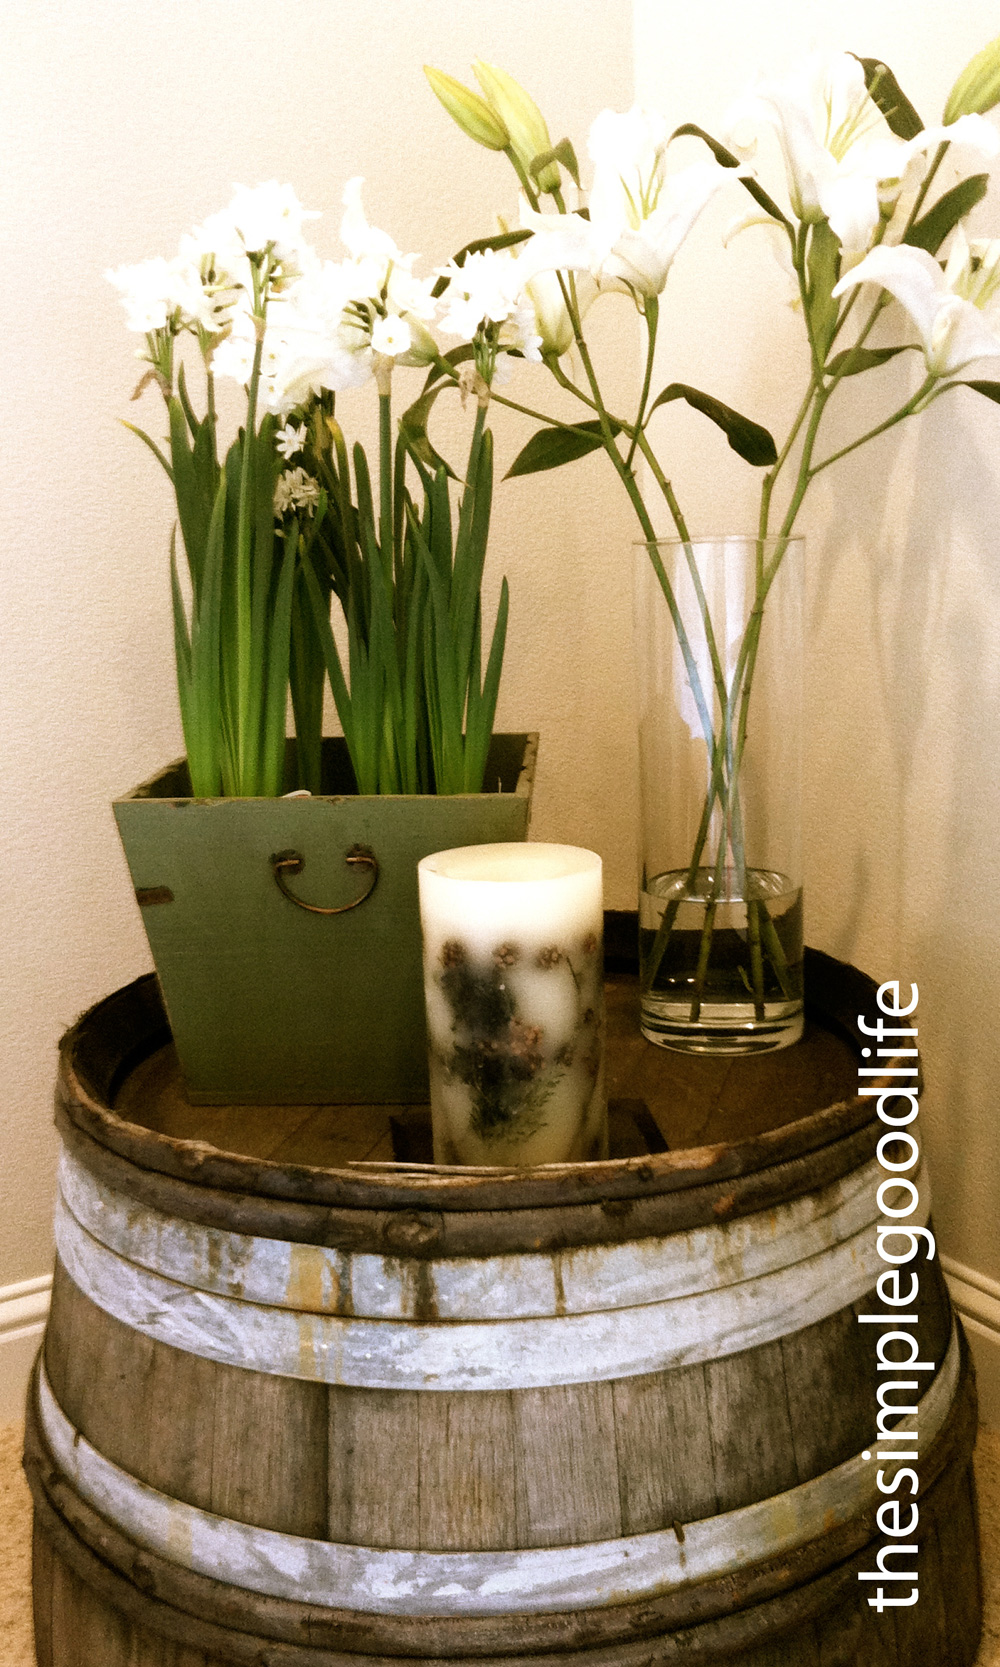 end table decor ideas photograph displaying 13 images for